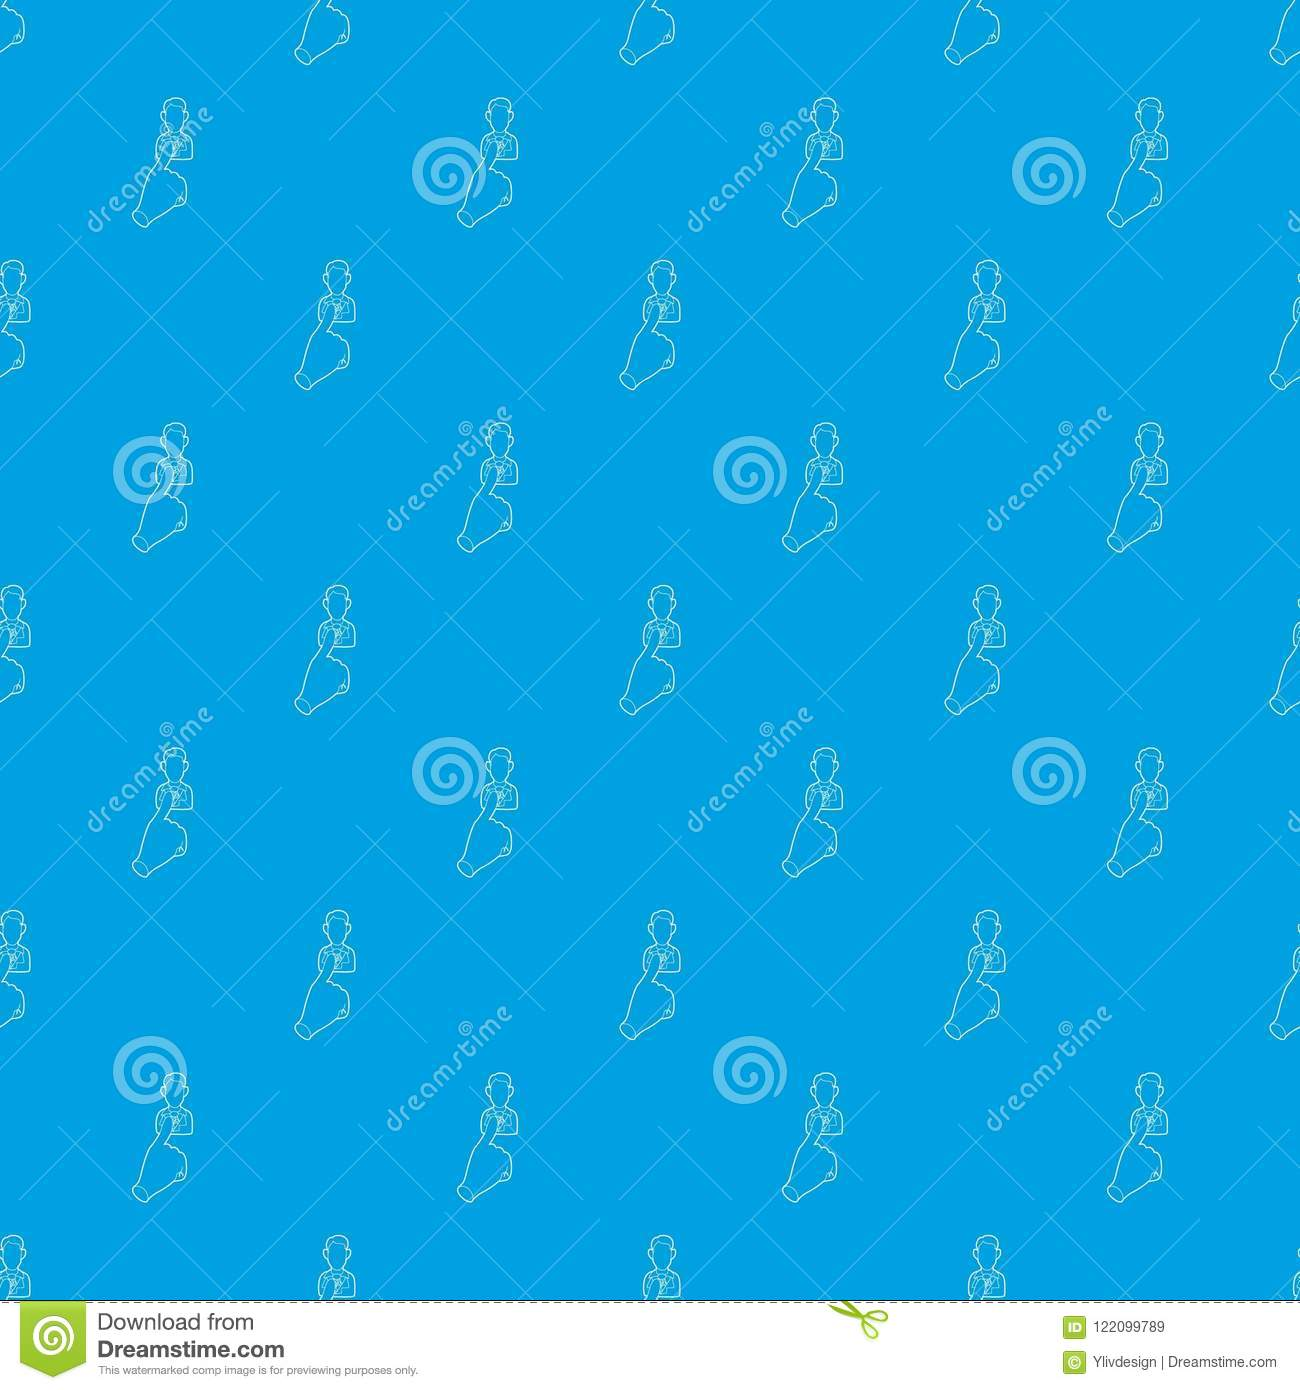 Hand Cursor Pointing To Person Pattern Vector Seamless Blue